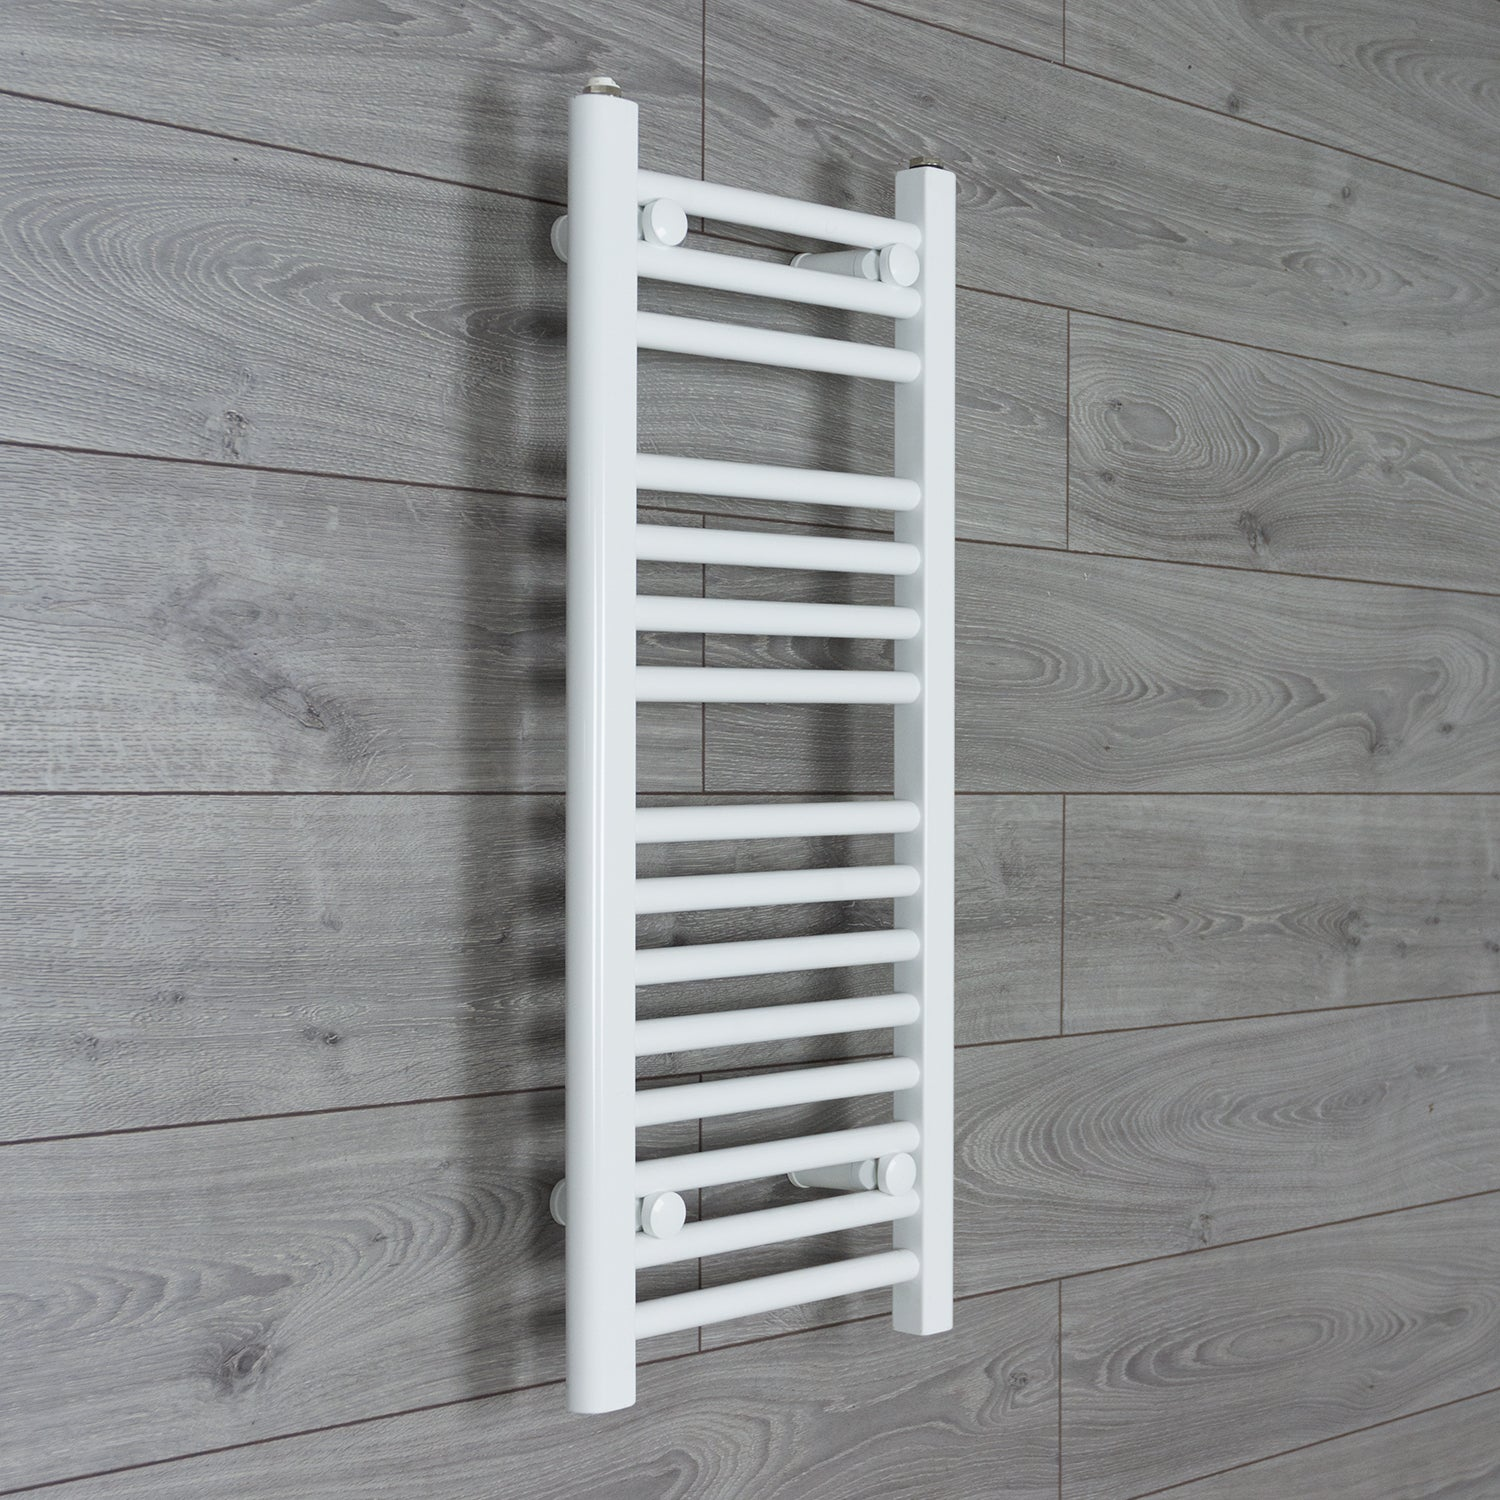 300mm Wide 800mm High Flat White Heated Towel Rail Radiator HTR,Towel Rail Only